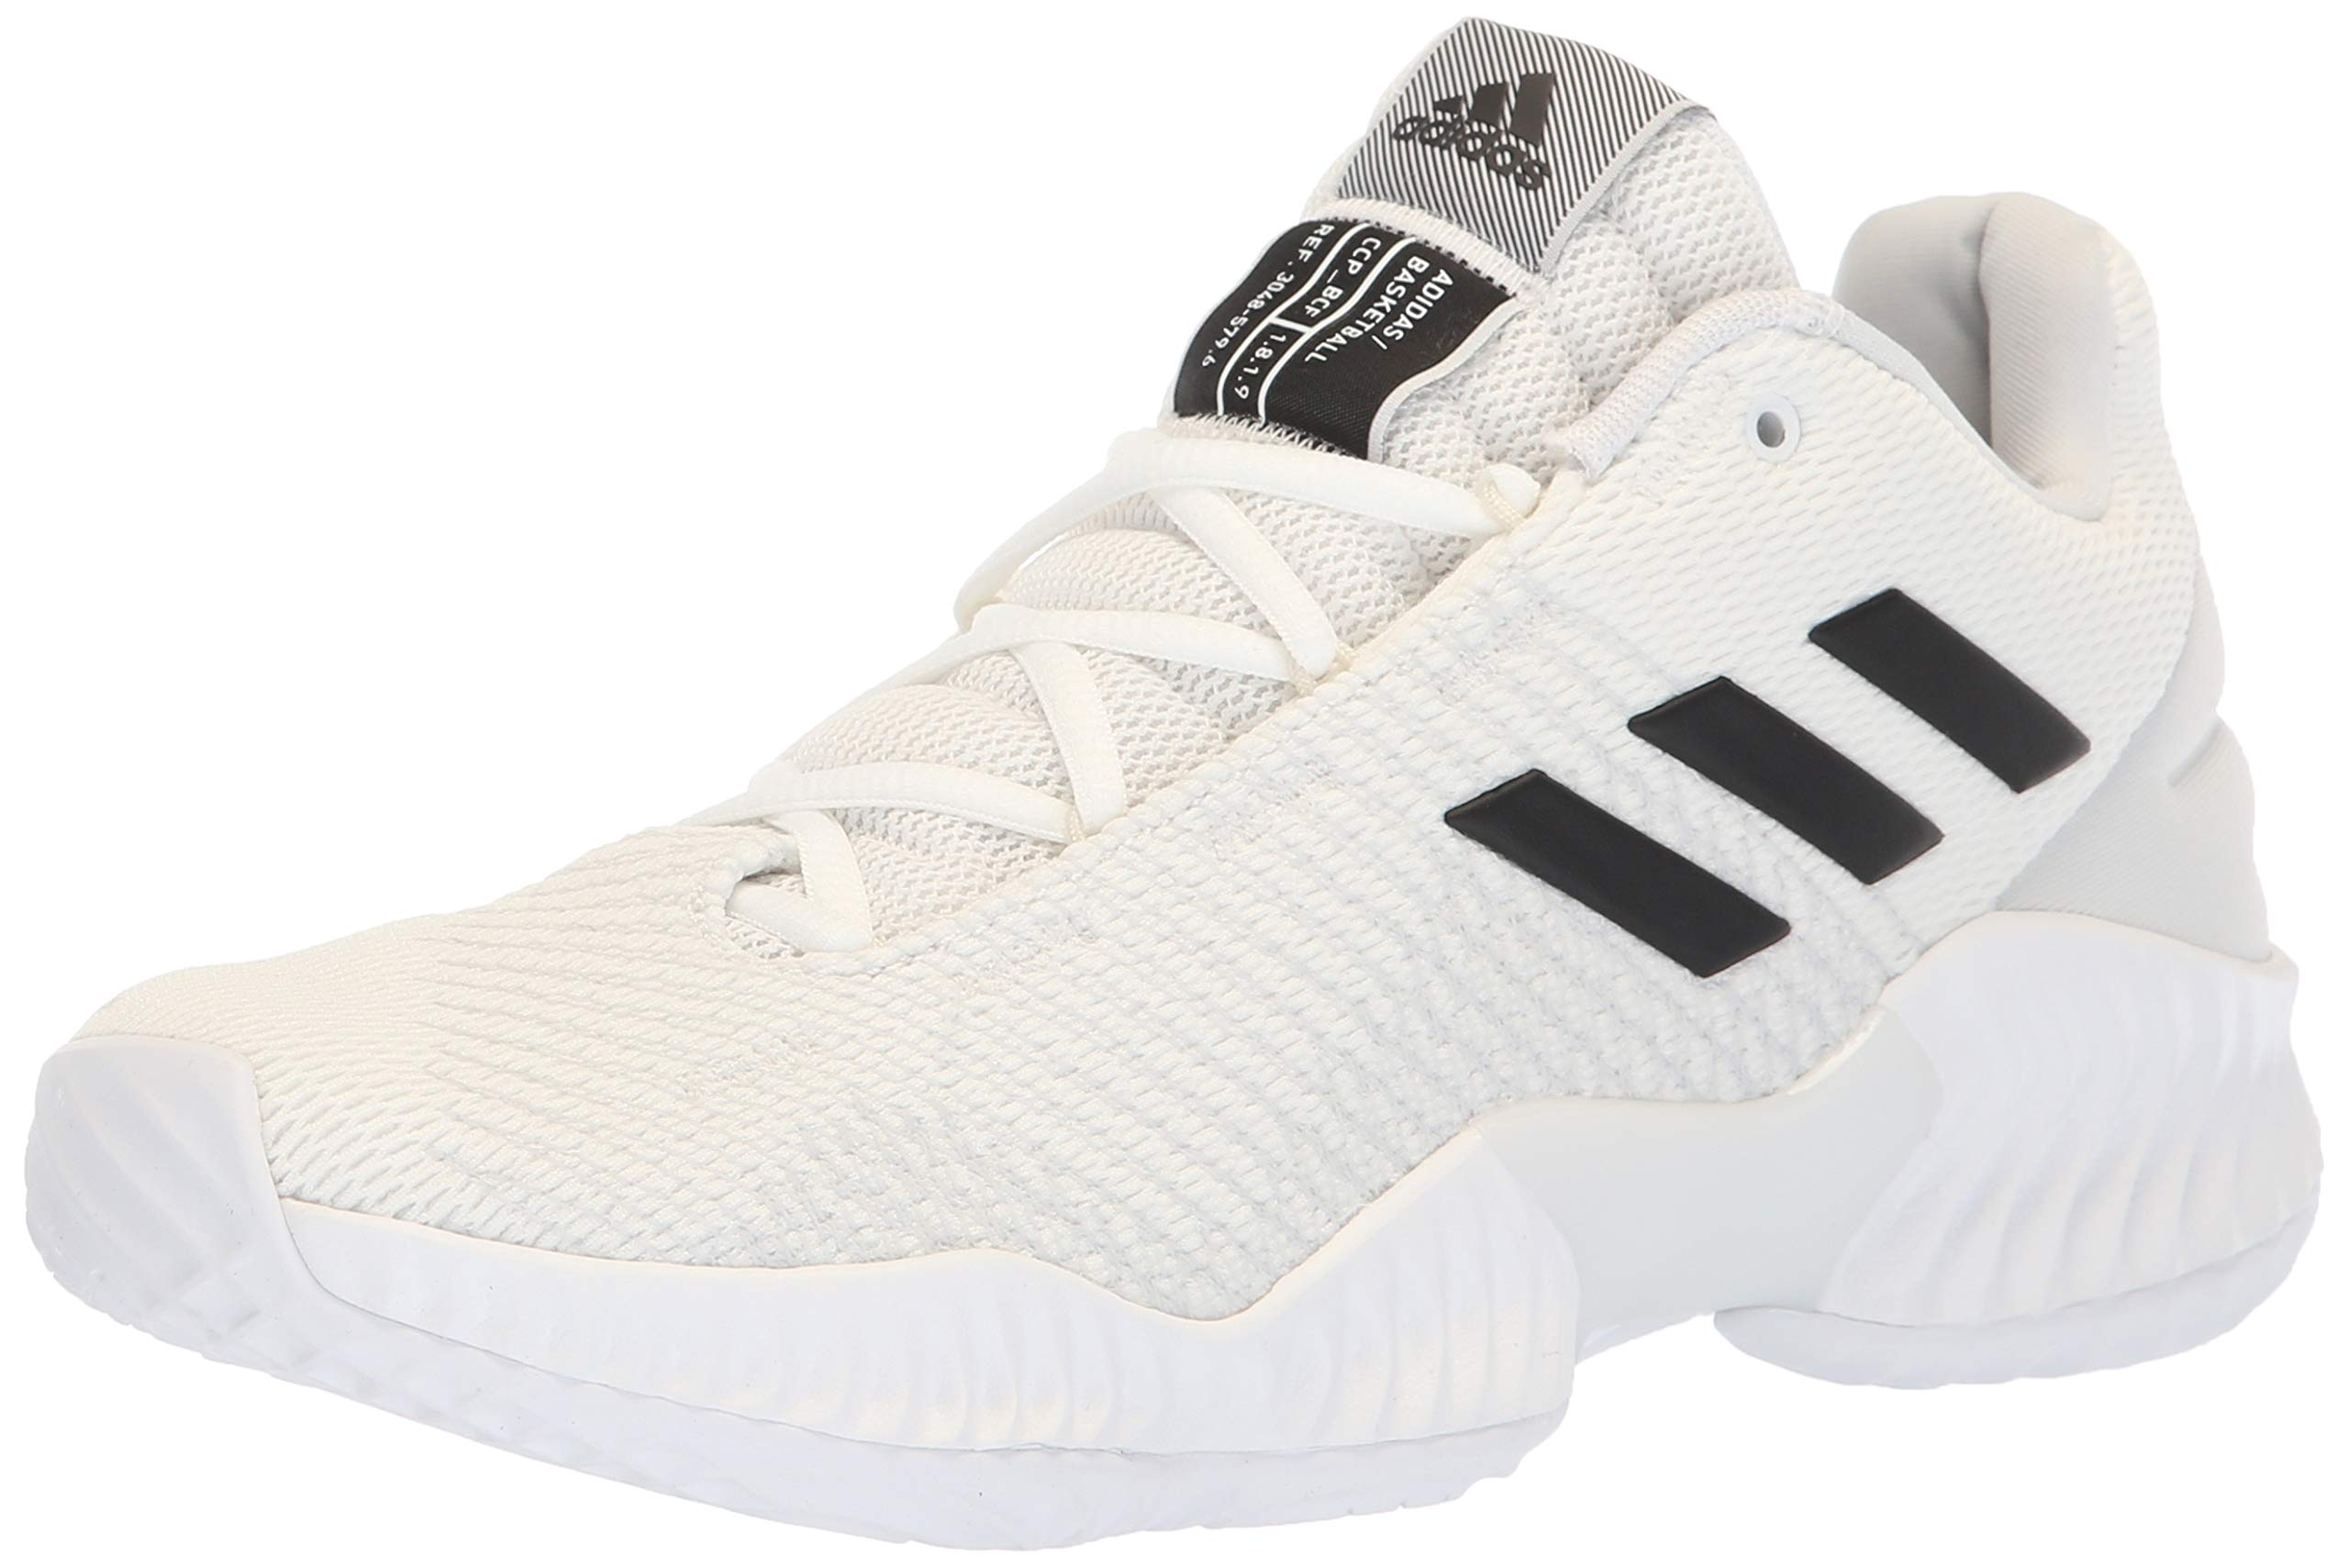 adidas Men's Pro Bounce 2018 Low Basketball Shoe, Black/Crystal White, 10.5 M US by adidas